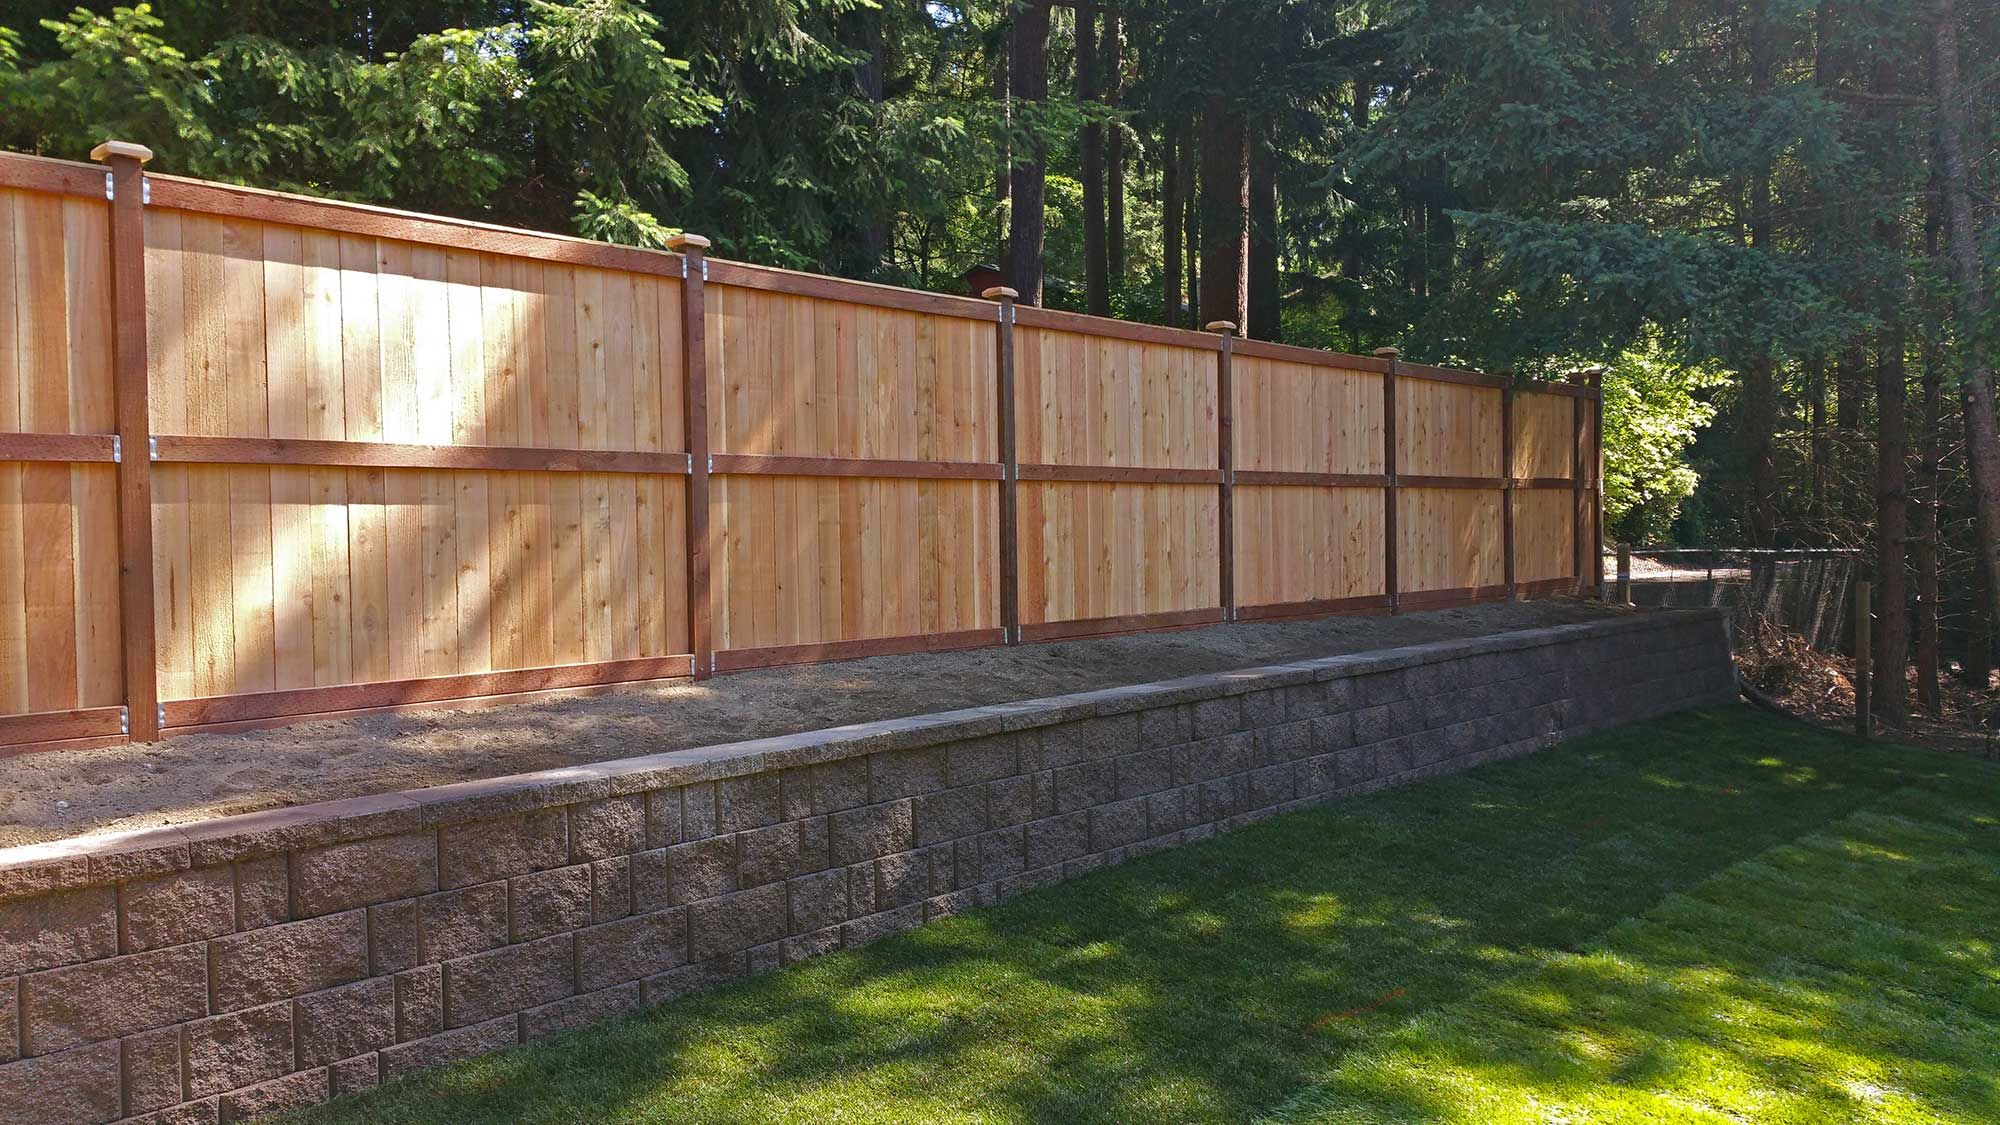 ajb services installed this 3 foot retaining wall with 6 foot